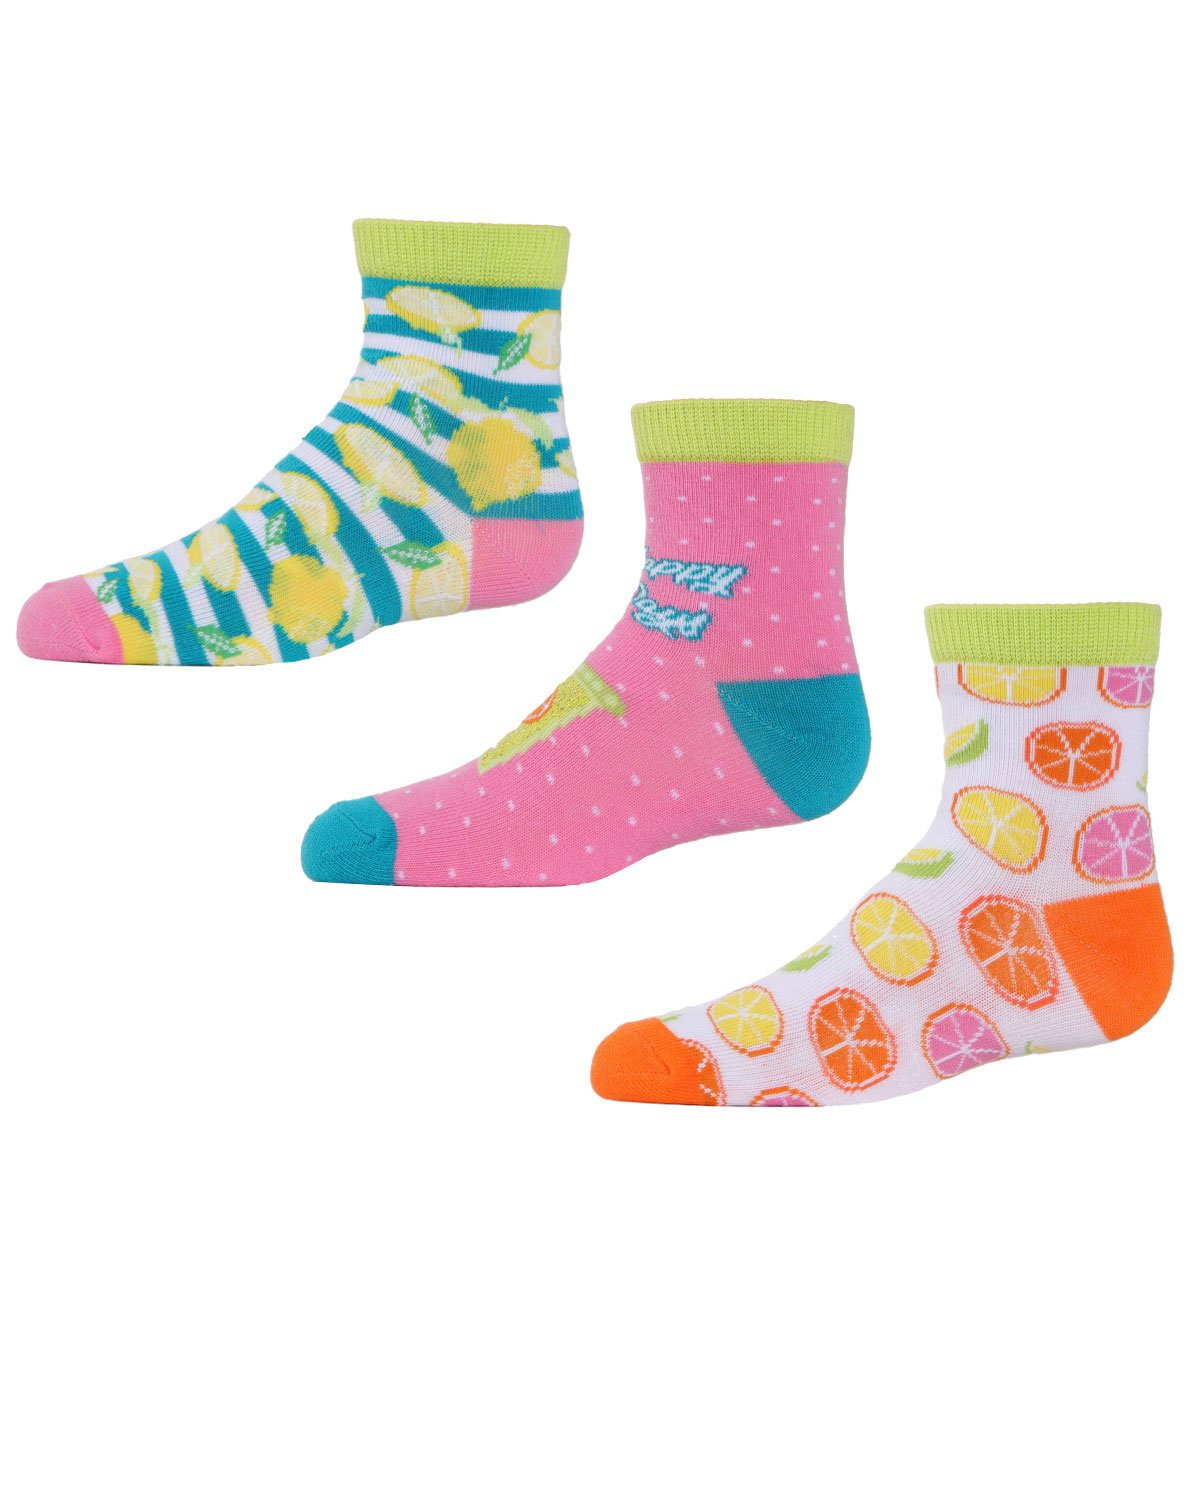 Mens athletic low cut Ankle sock oranges and lemons Fit Short Socks